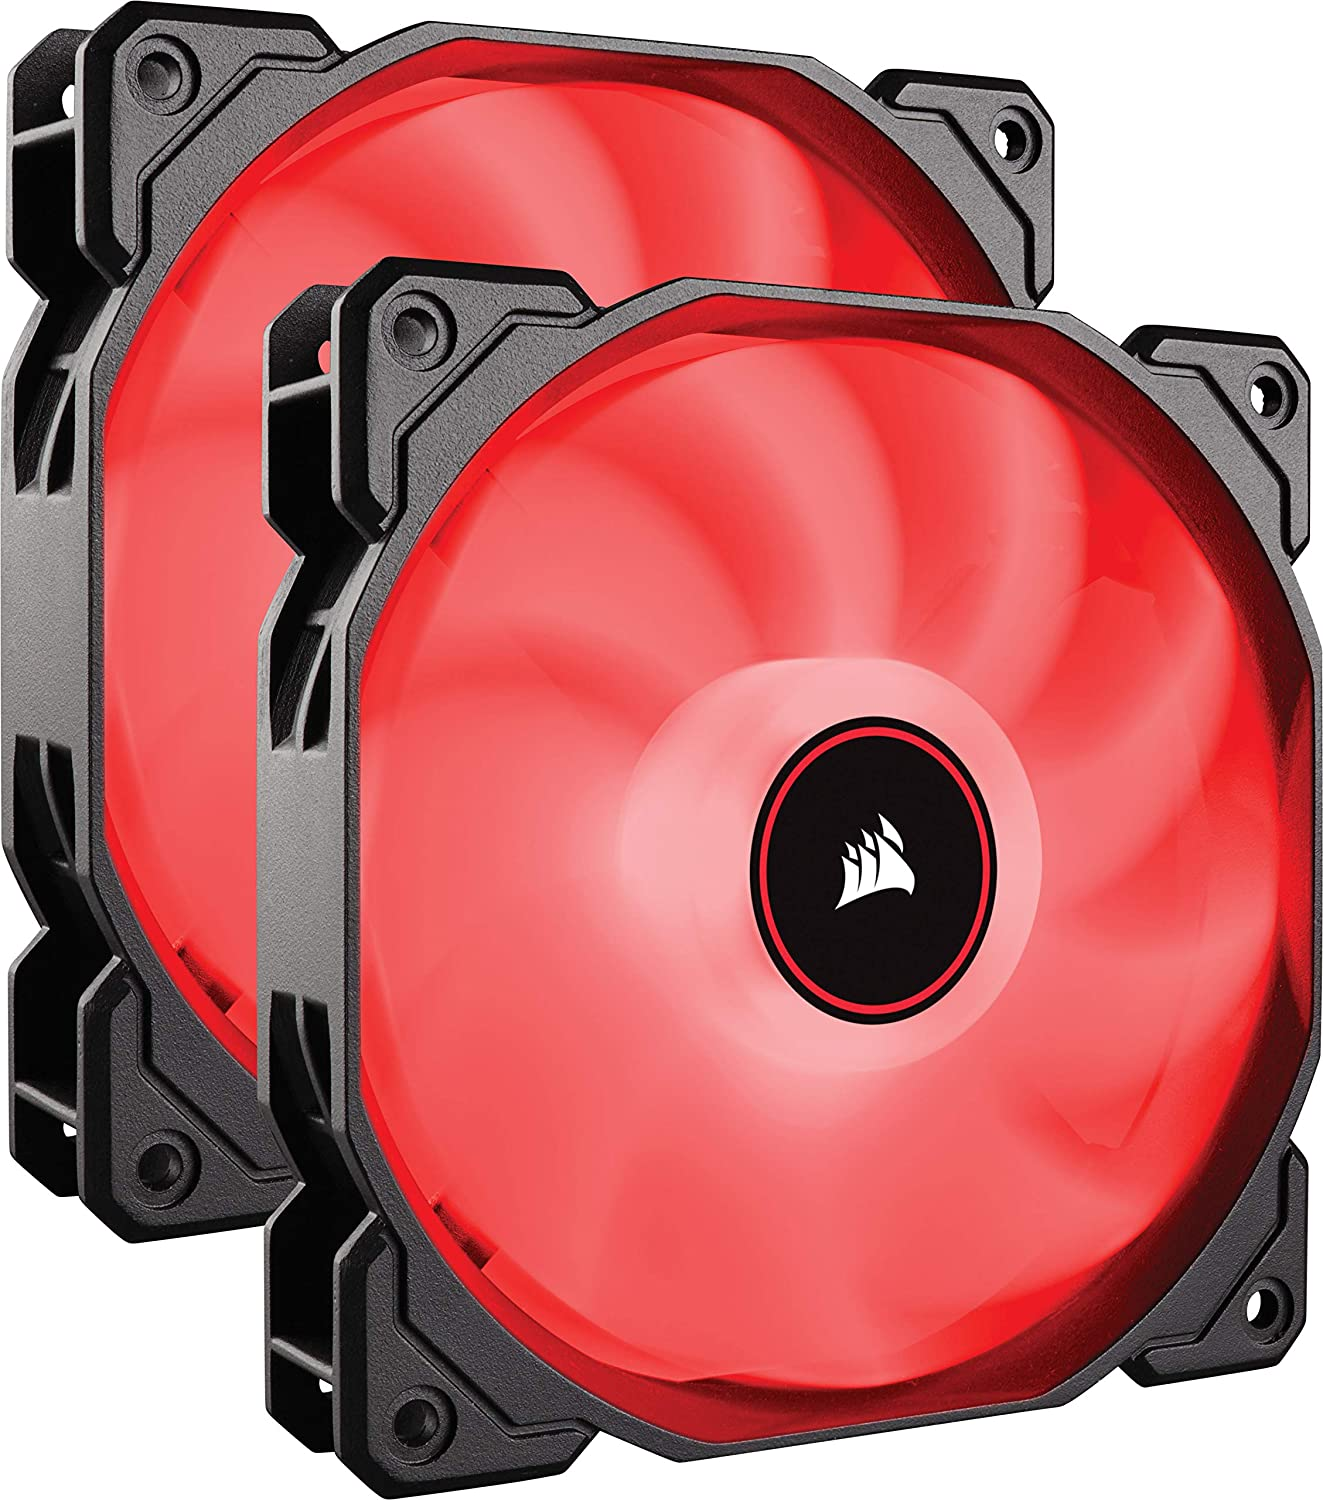 CORSAIR AF140 LED Low Noise Cooling Fan, Dual Pack - Red, 140 mm